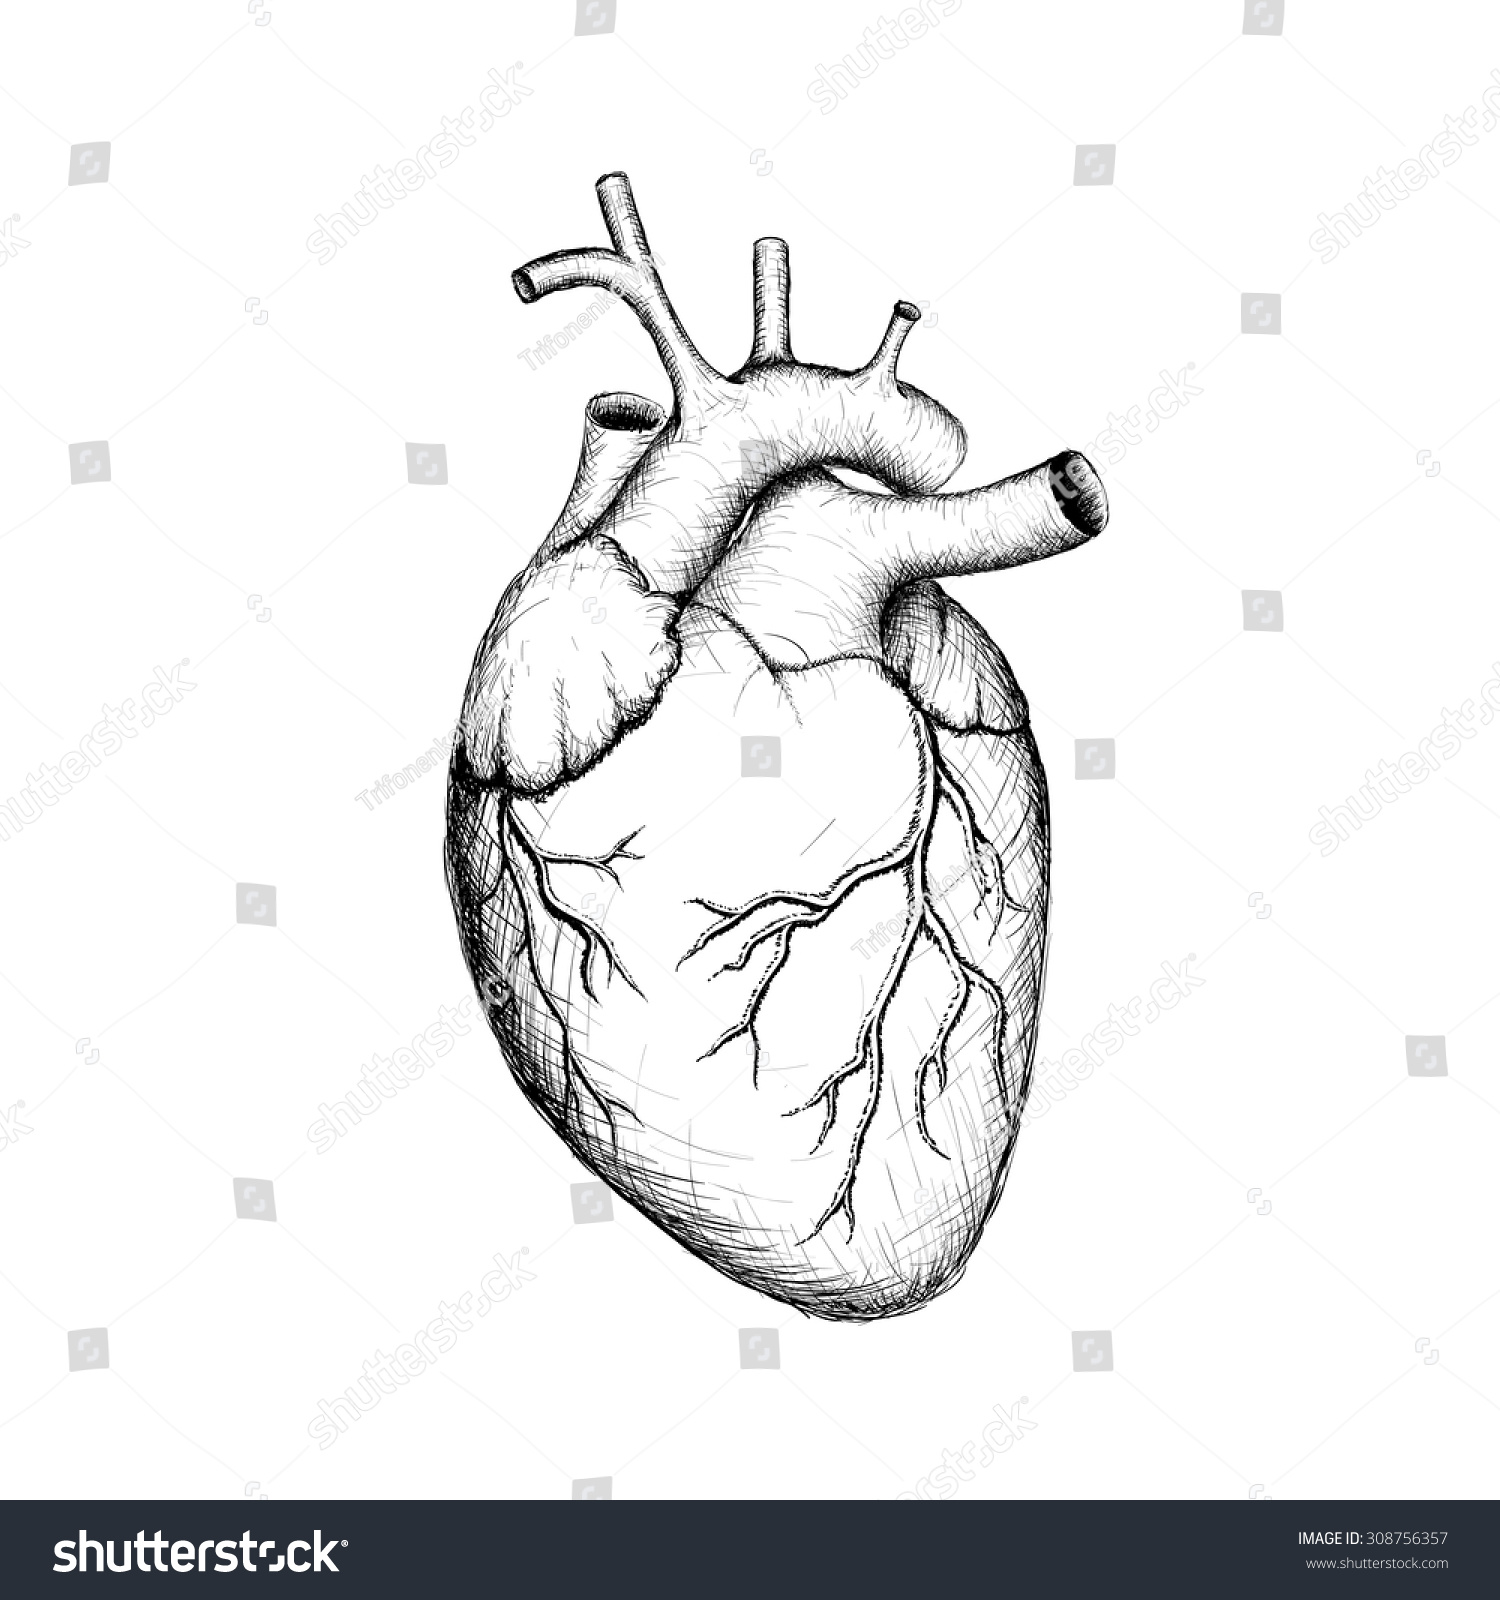 the characteristics of the heart as an organ Cardiac muscle is specialized tissue that is found only in the heart it has  characteristics similar to both smooth and skeletal muscle tissue,.